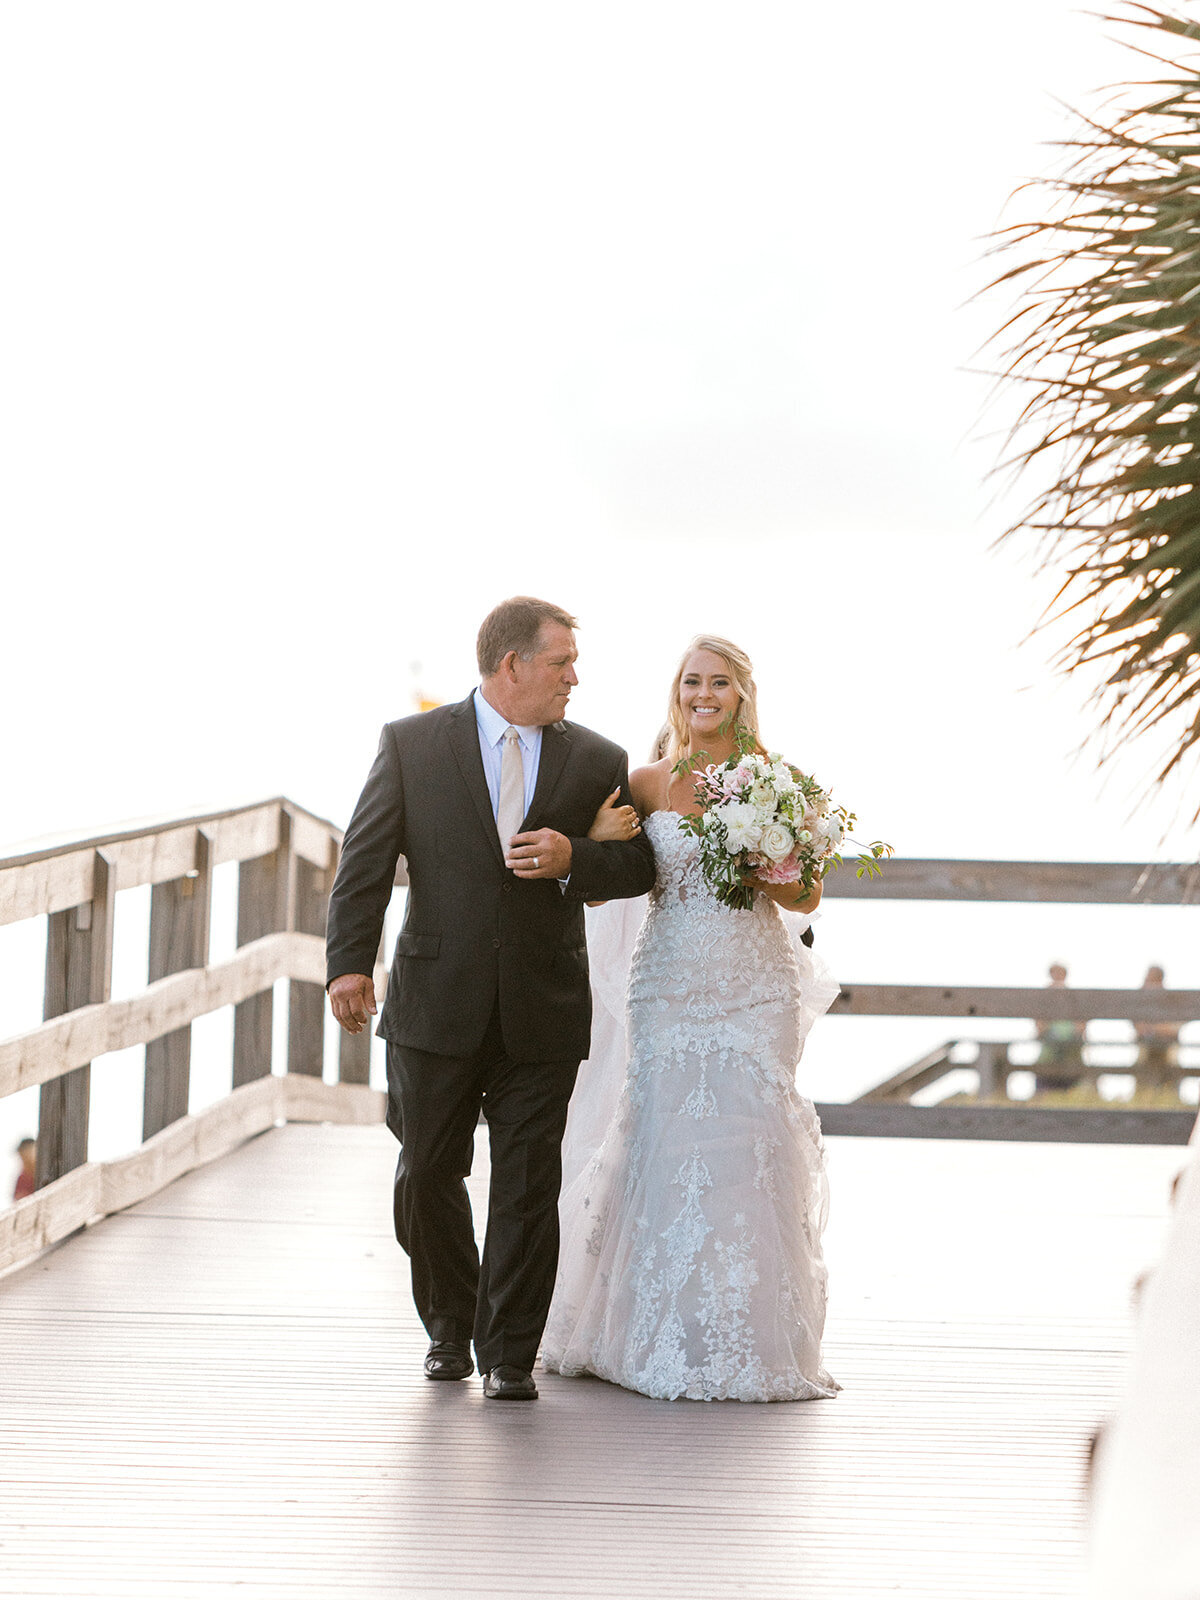 OlimbPhotography_KatieWillWedding_DestinWeddingPhotography-0163